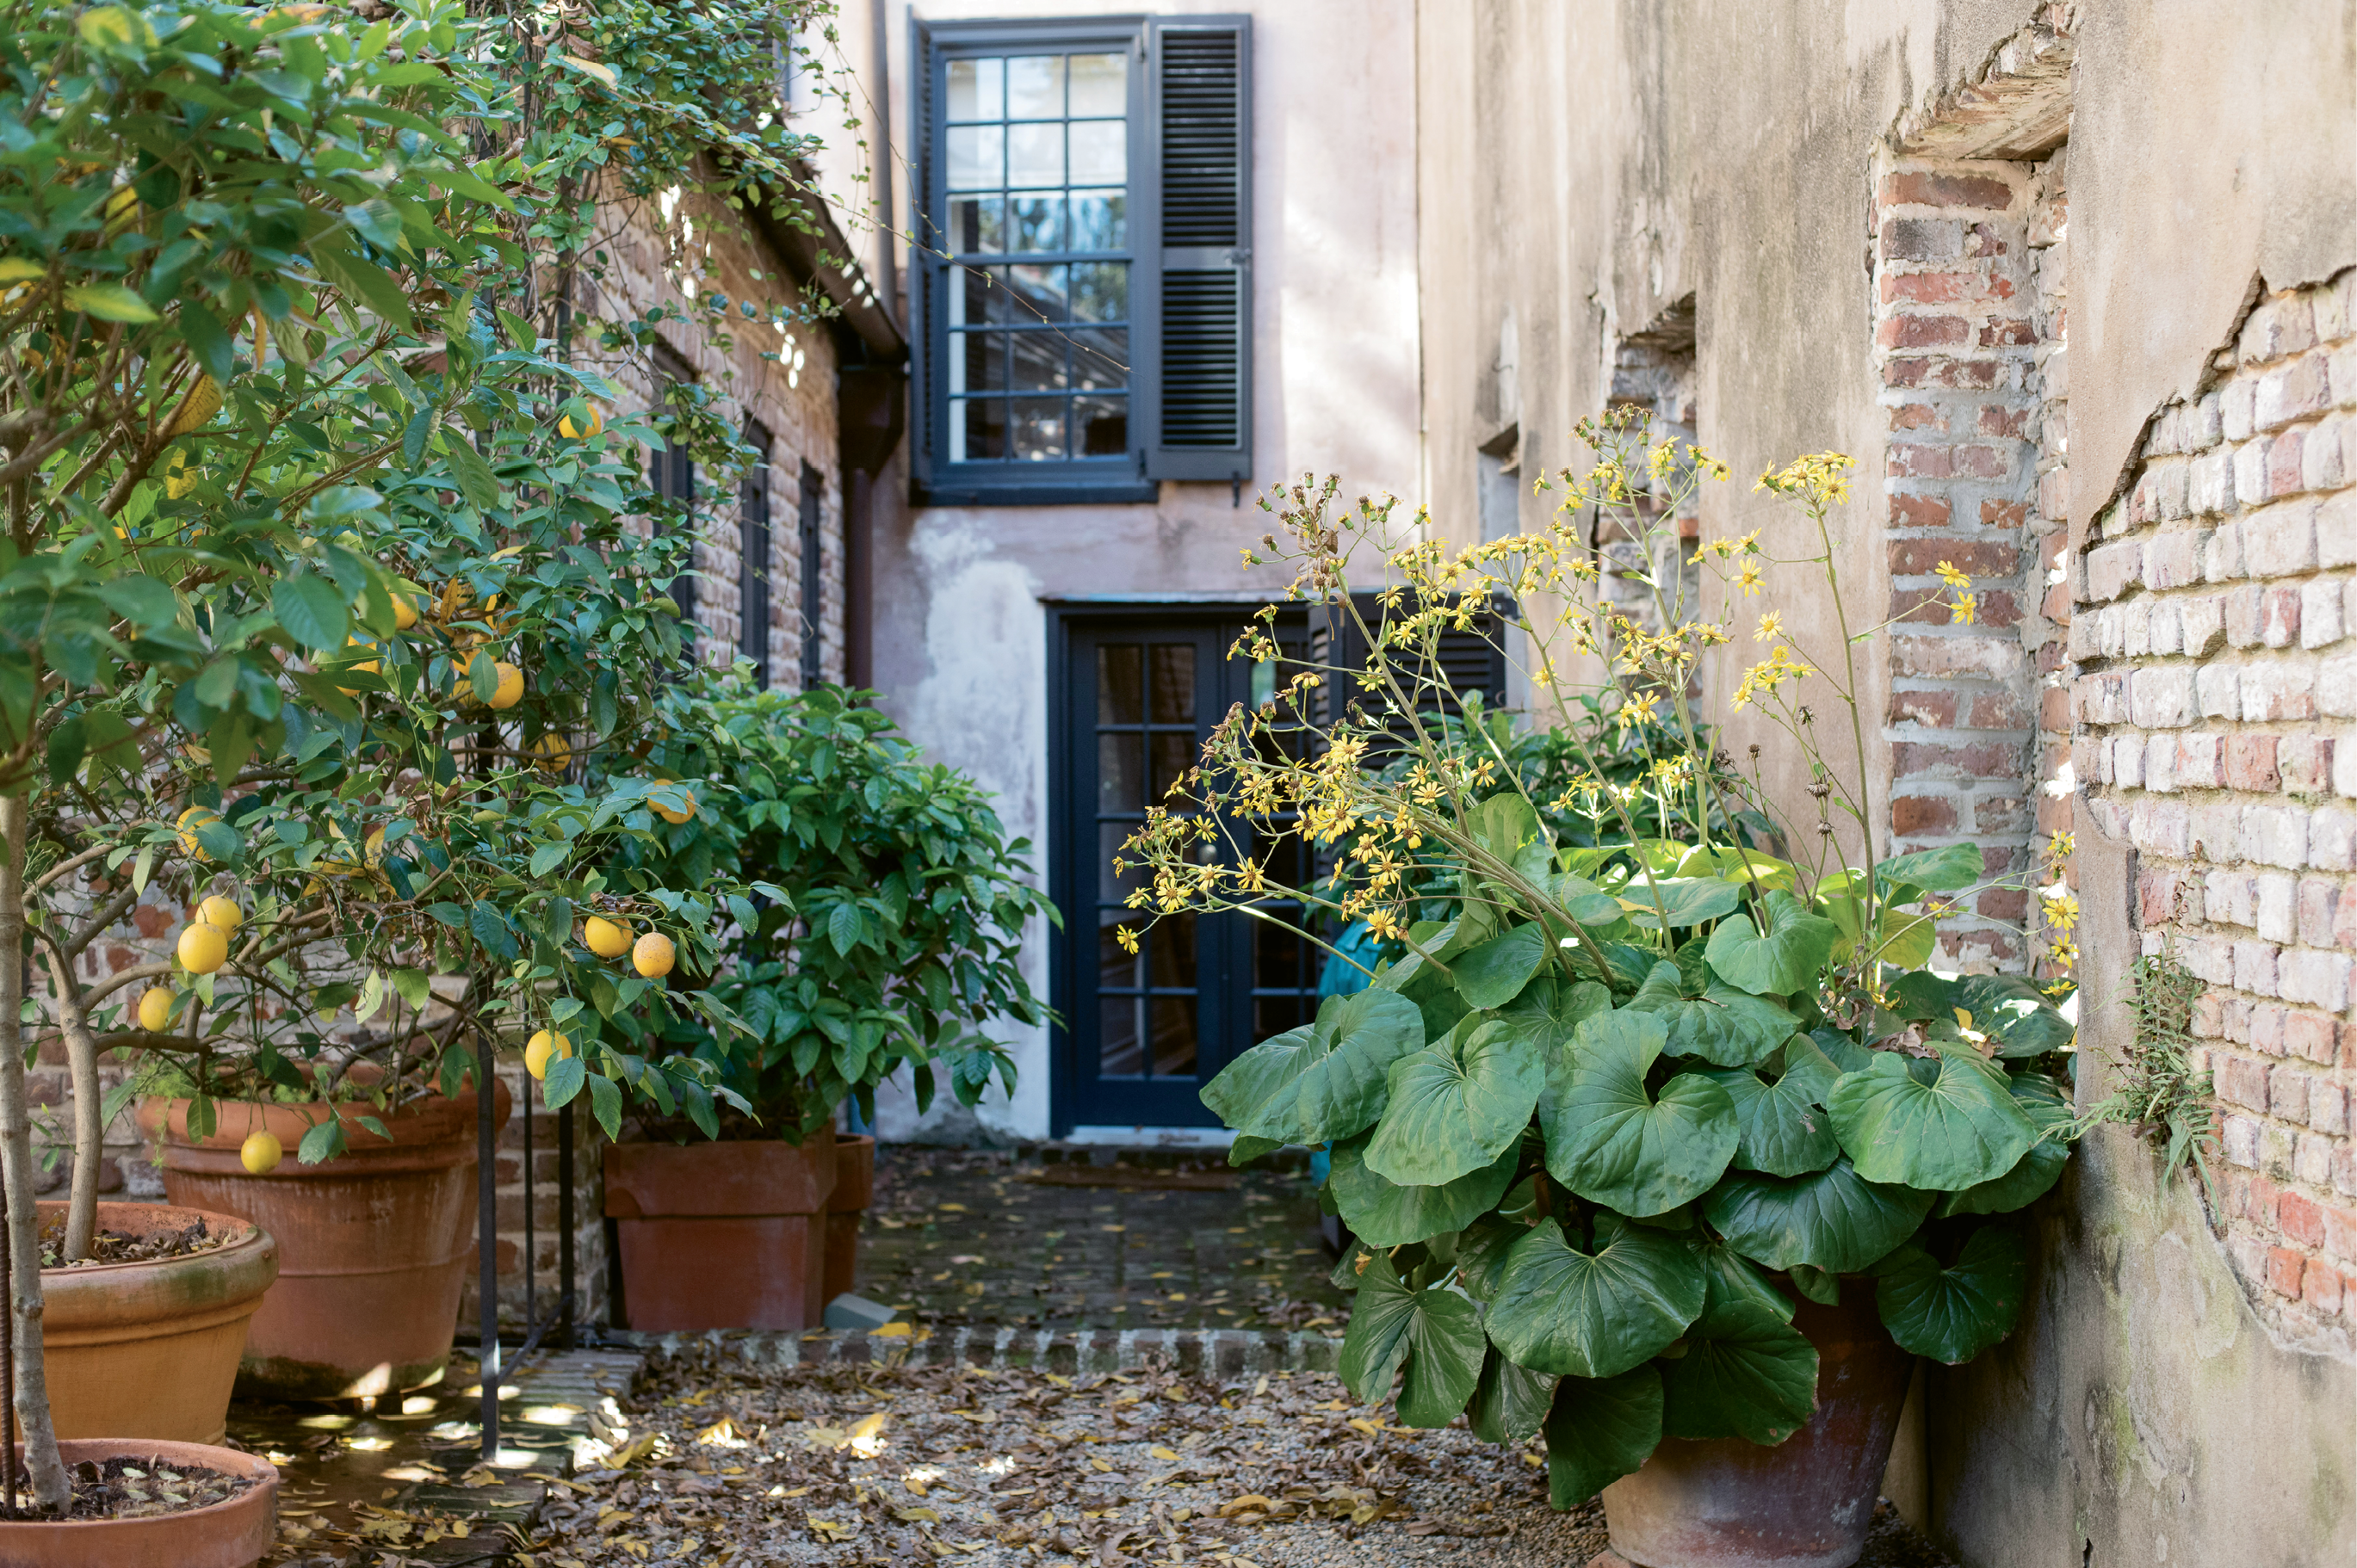 HAVE YOUR GARDEN & EAT IT, TOO: The courtyard garden features citrus trees, such as lemon and tangerine, as well as beehives that yield some 70 pounds of honey per year.